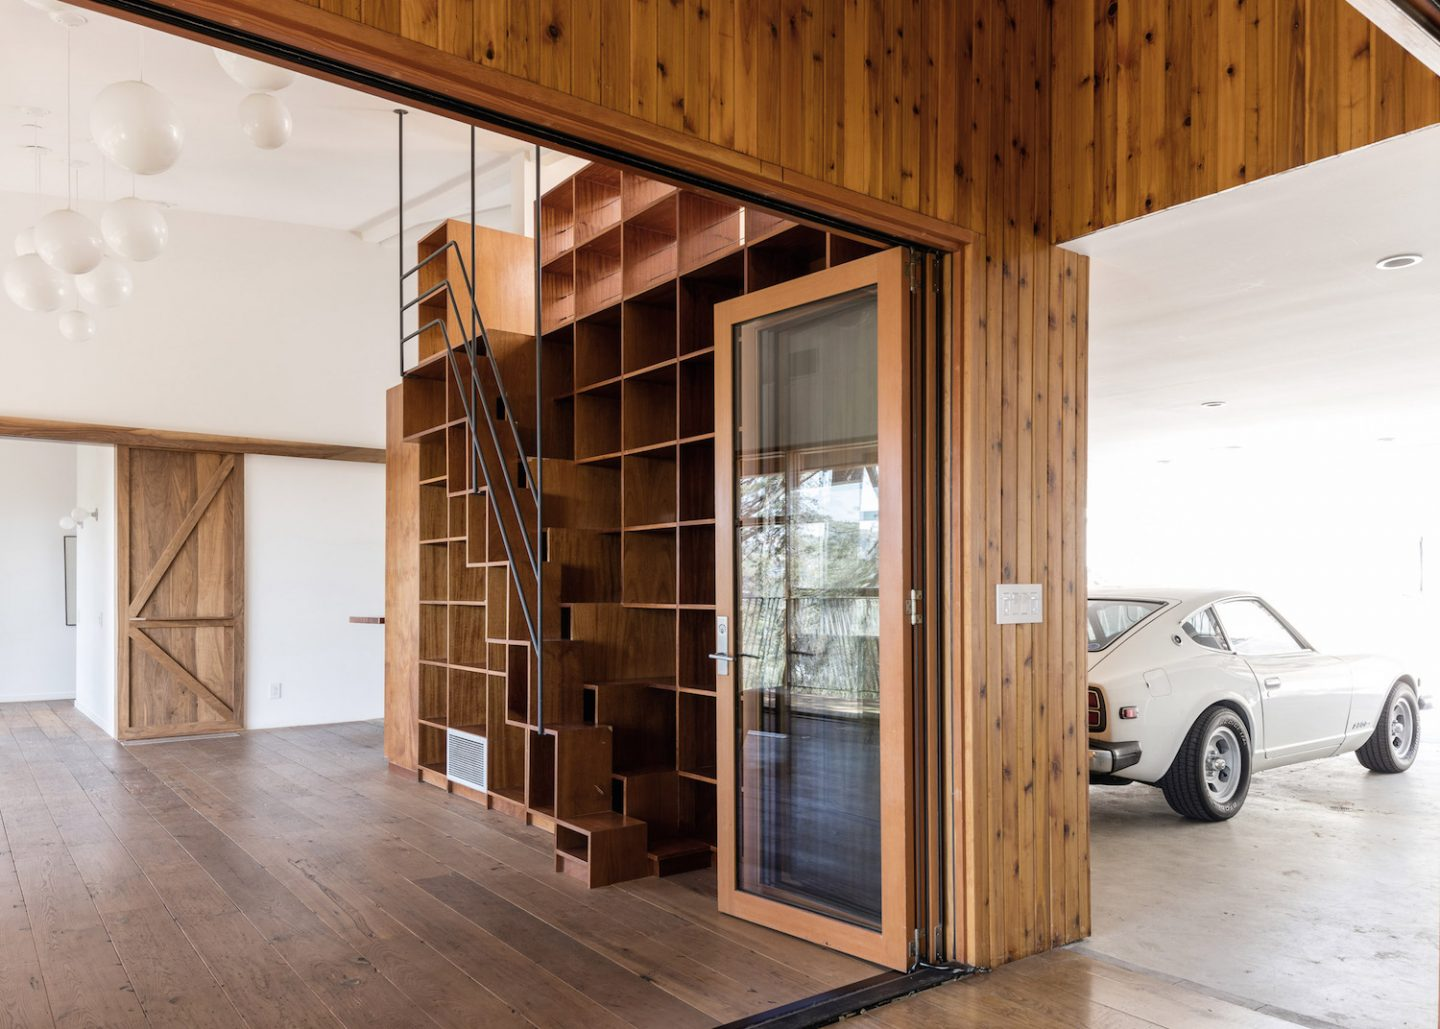 architecture_houseintrees_anonymousarchitects_3